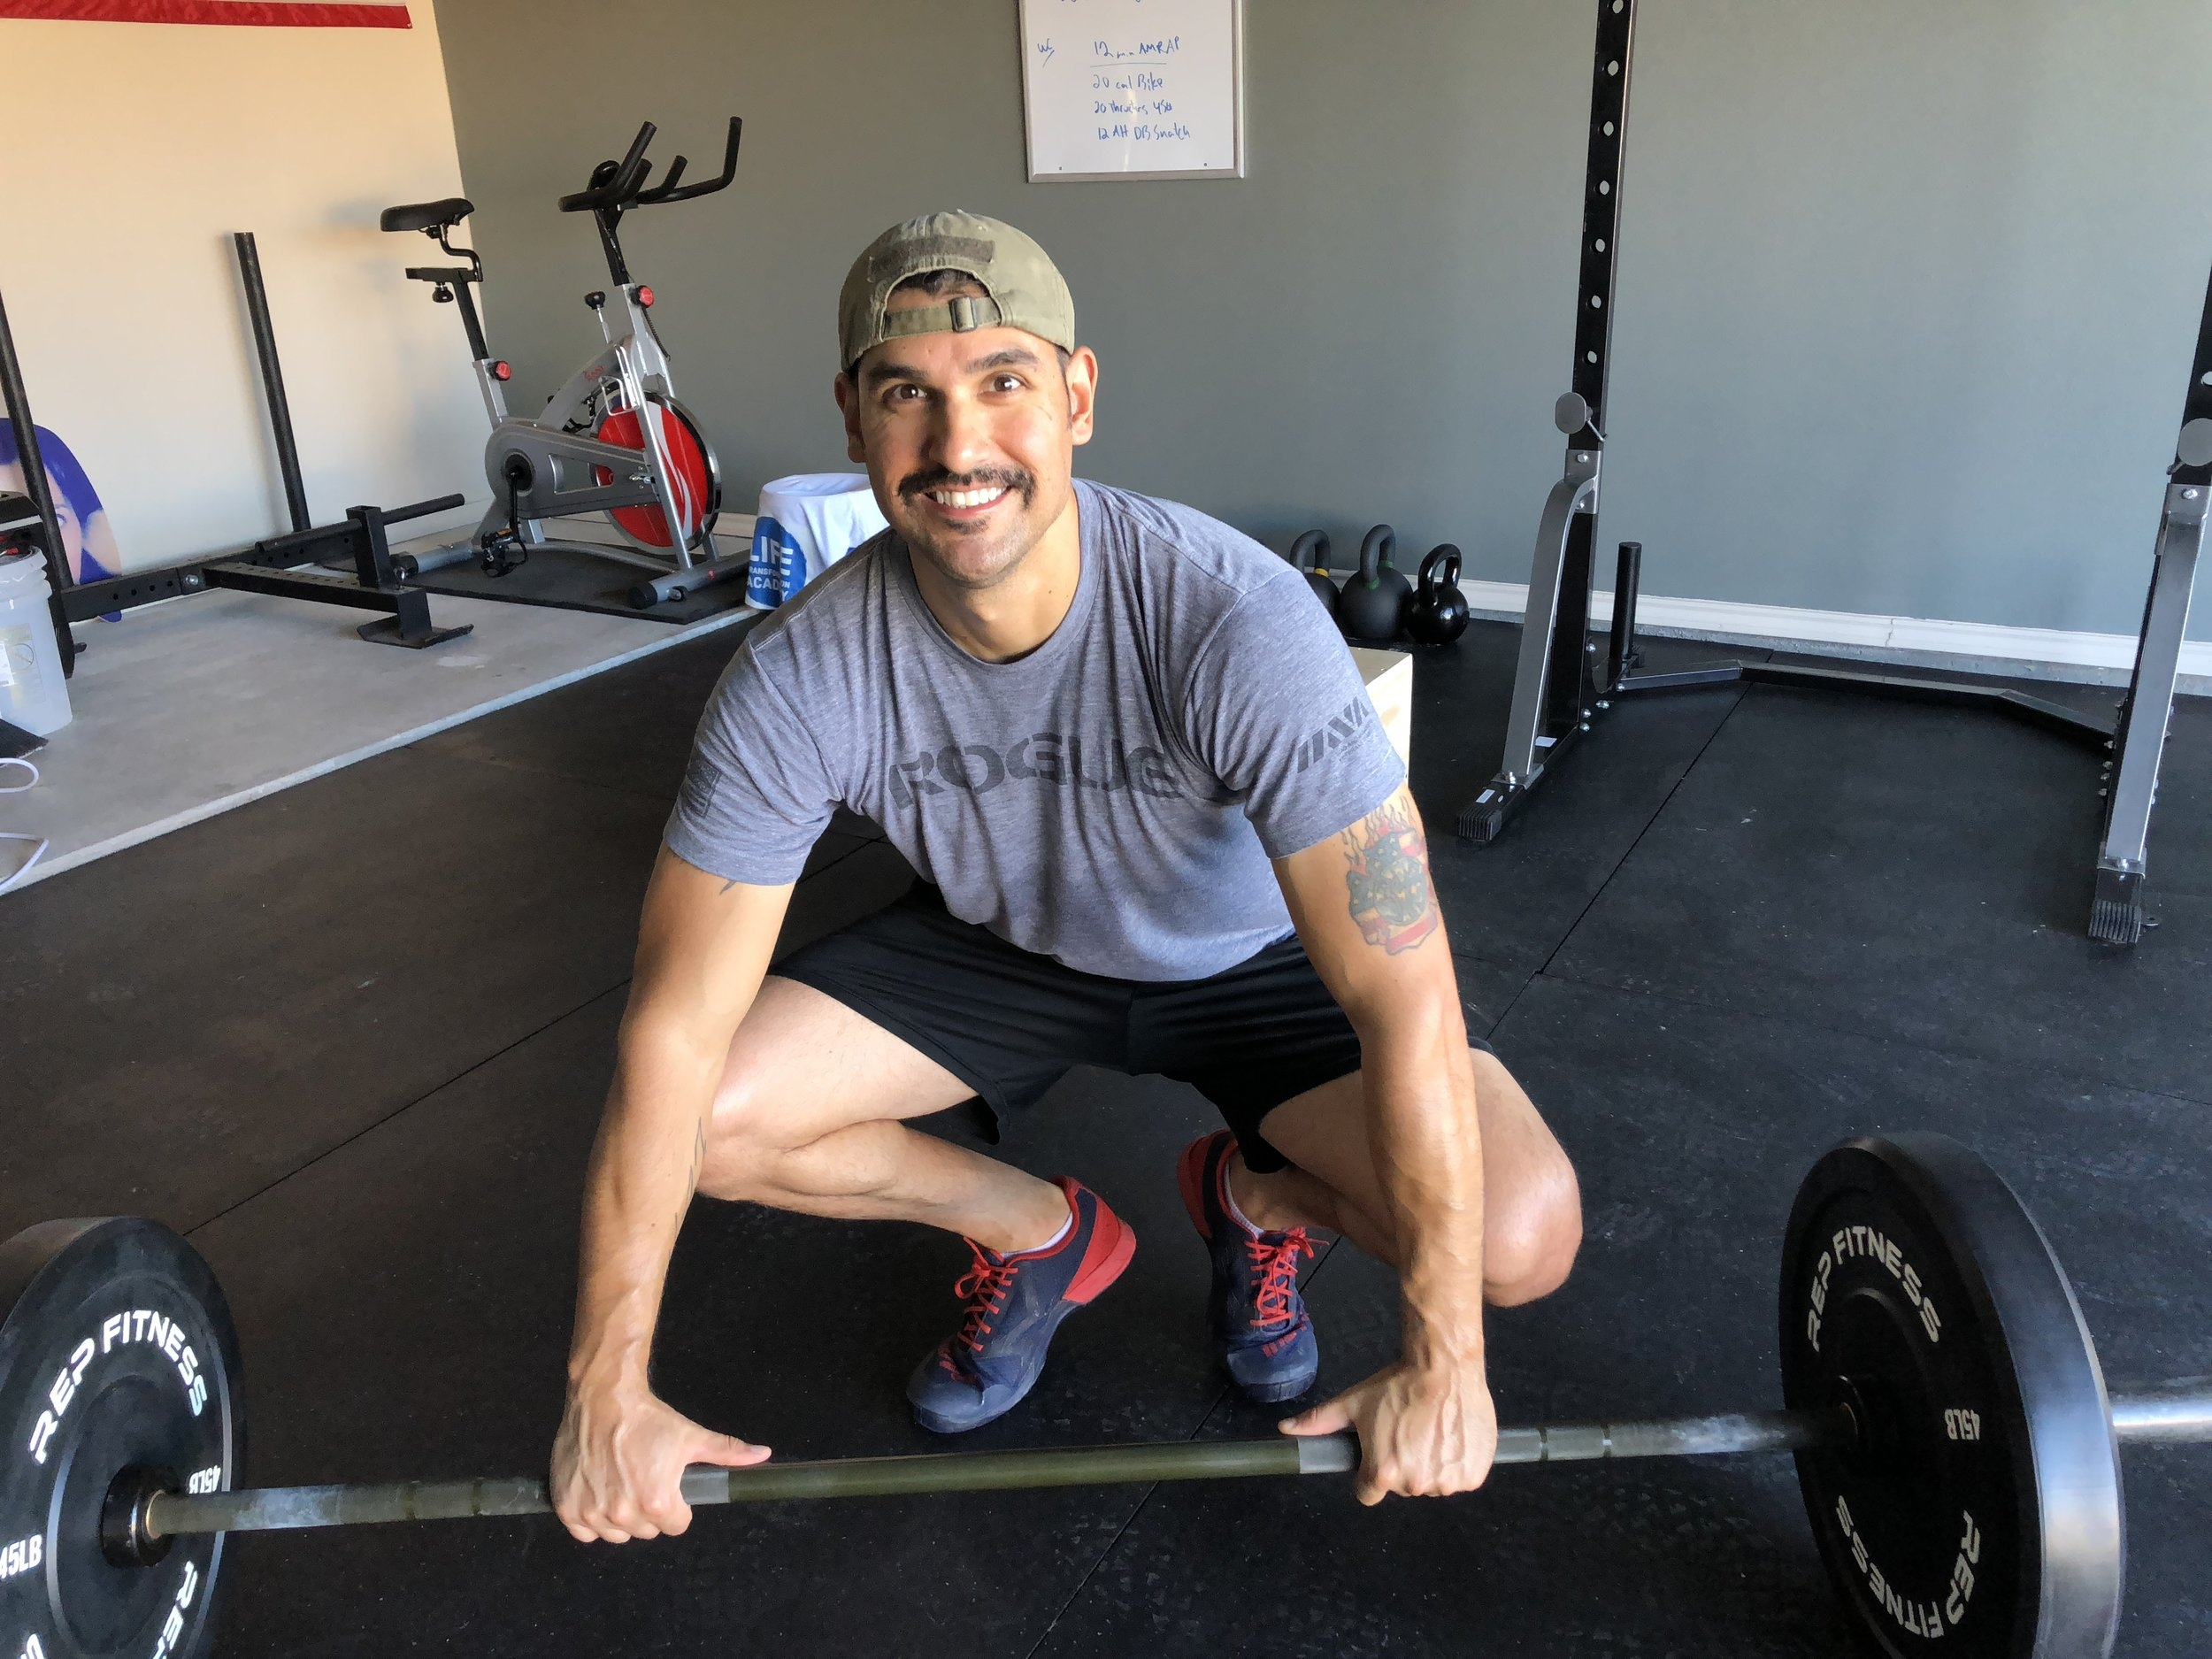 Meet your trainer - I'm Jon, certified trainer and owner of Max Fortitude Fitness! We'll be working together to help make 2019 your most successful year yet. I look forward to interacting directly with you and I can't wait to see what you can accomplish!